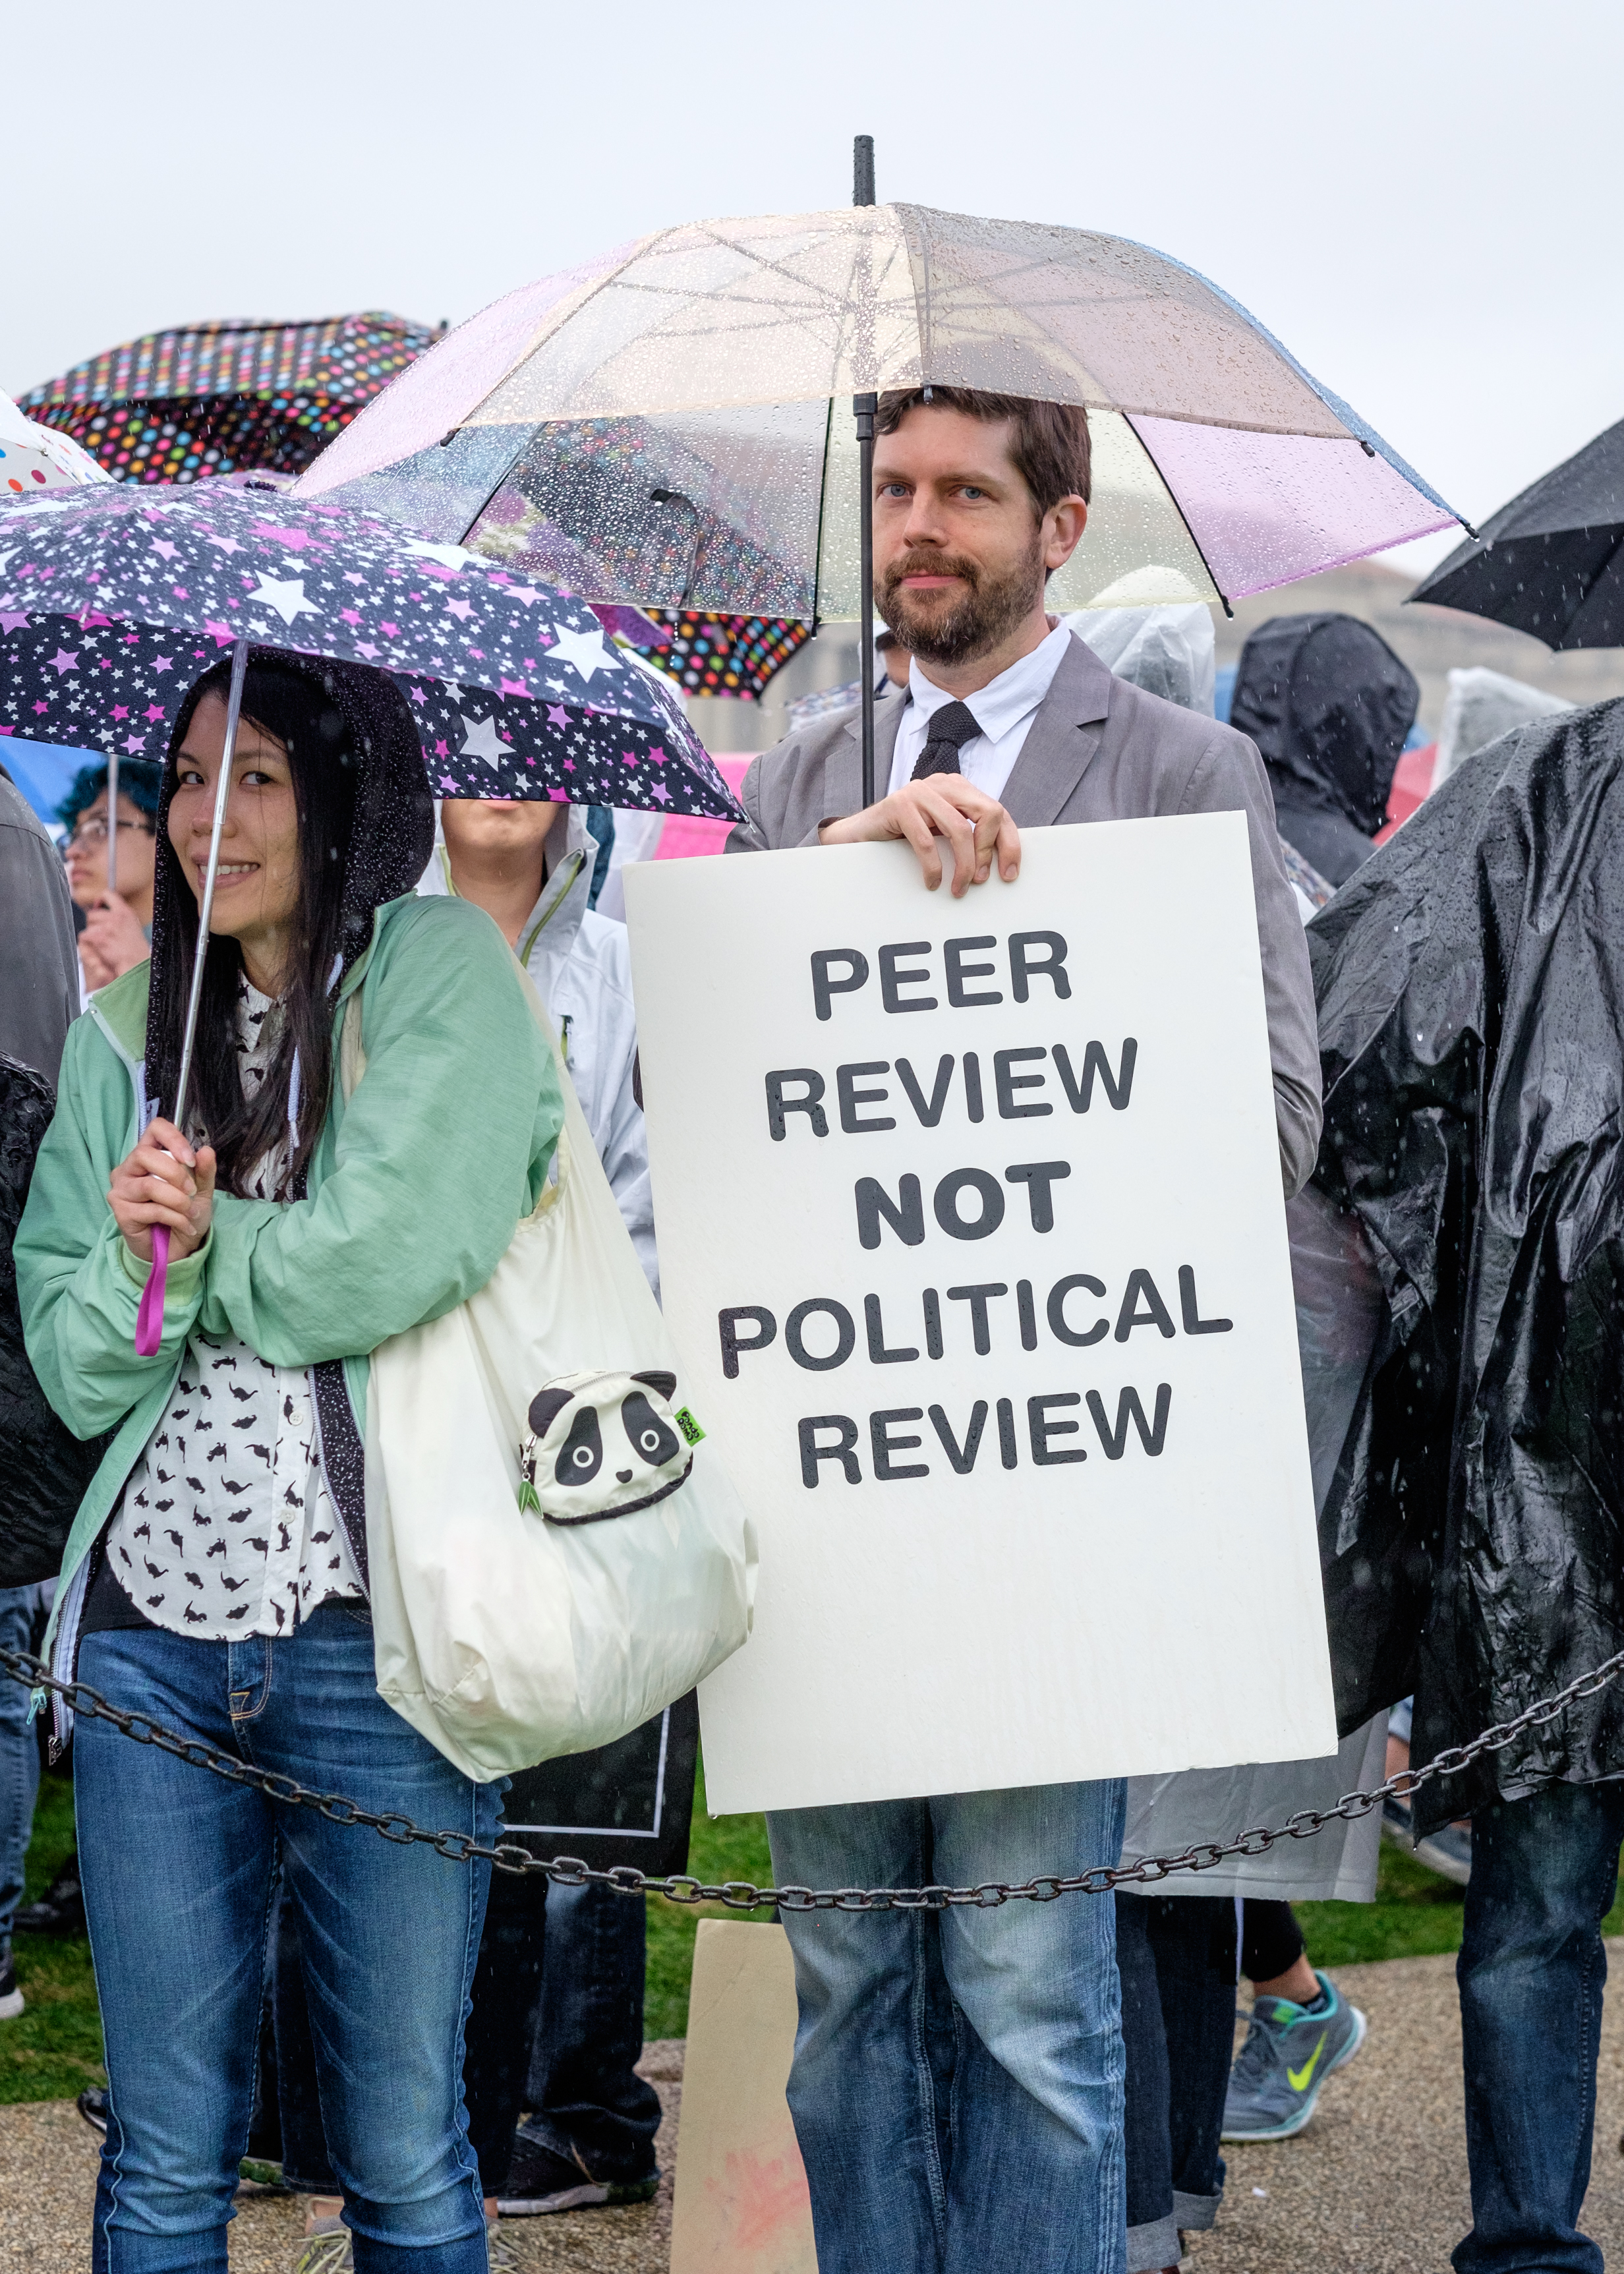 """Mike Myers of Arlington, VA is seen at the March for Science on the National Mall on Earth Day, Saturday, April 22, 2017 in Washington, DC. He attended the march """"to support non-partisan research and to keep politics out of the process of discovery."""" Mike has worked in government funded research, most recently with DARPA on the engineering side. He joins thousands who have gathered in the nation's capital with scientists and science supporters across the world who are participating in the first-ever global march for science. More than 600 locations world-wide held March for Science events."""